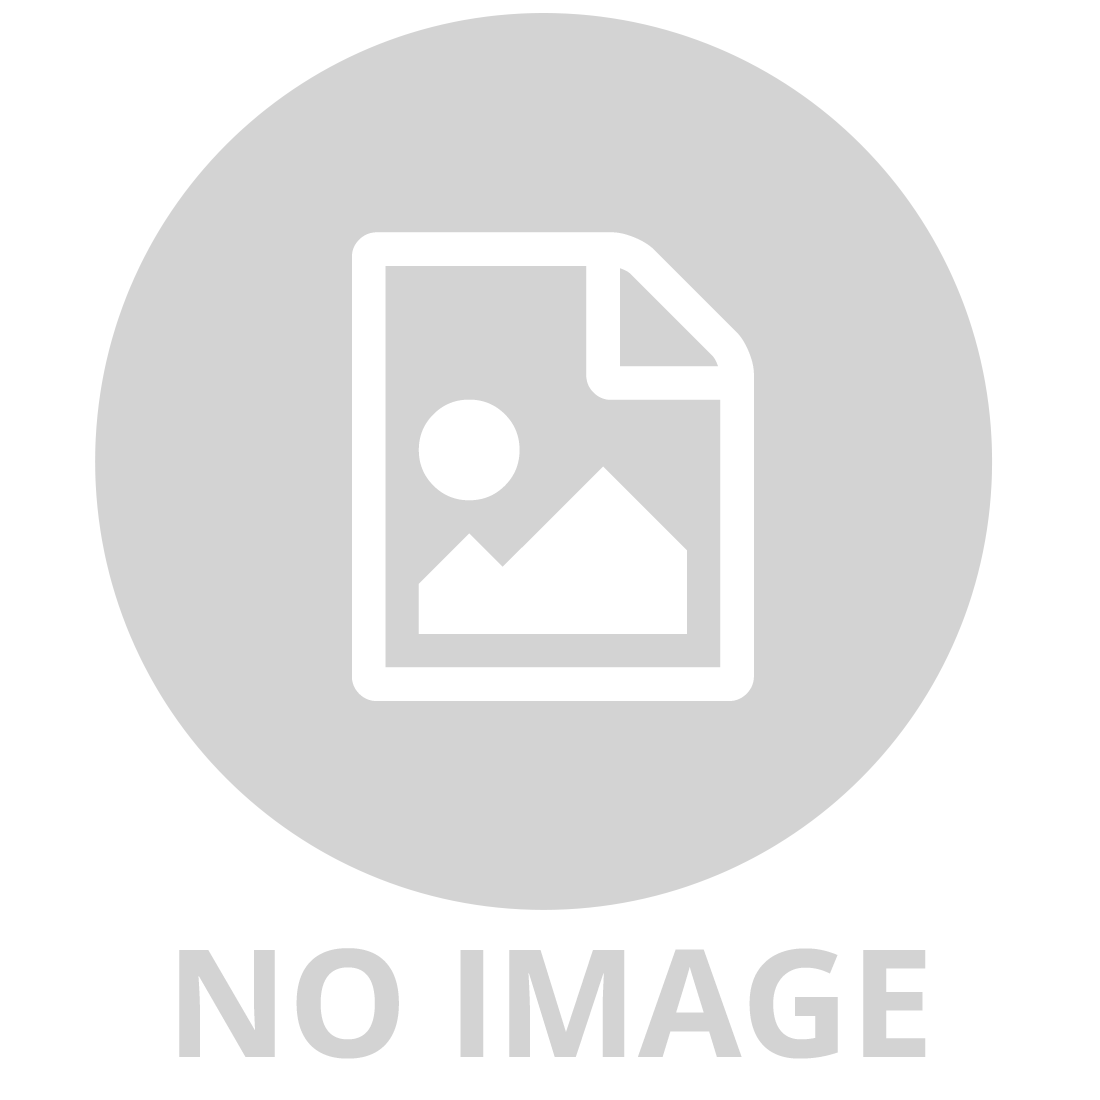 FISHER PRICE- SMART STAGES TABLET WHITE